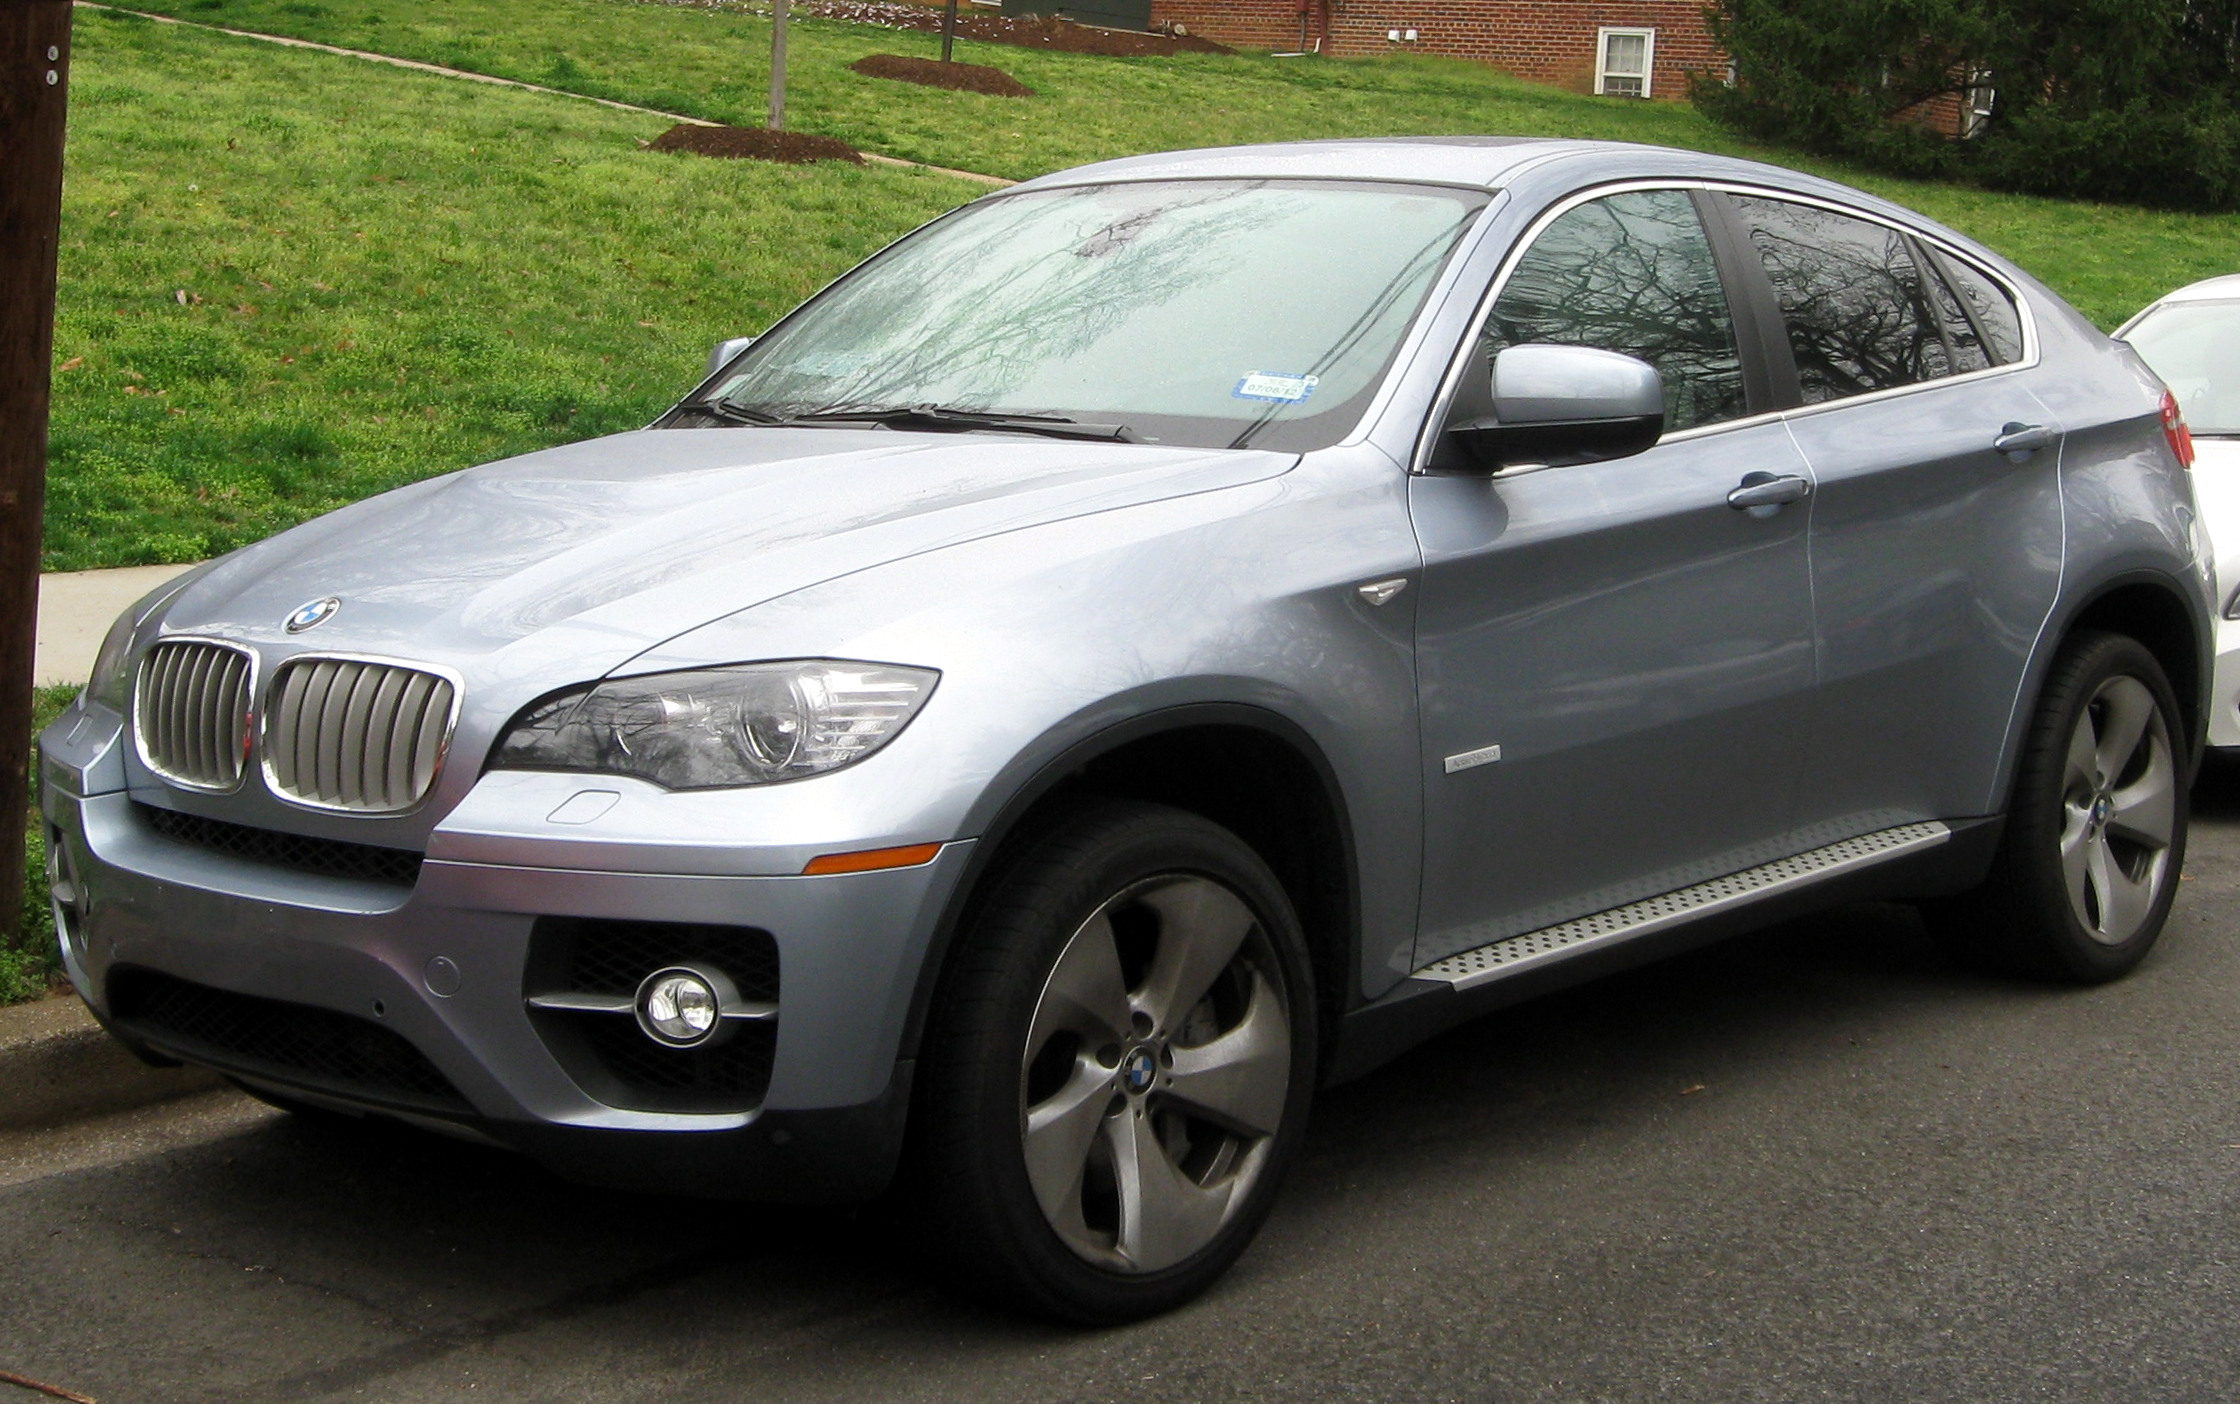 bmw x6 2009 pictures #4